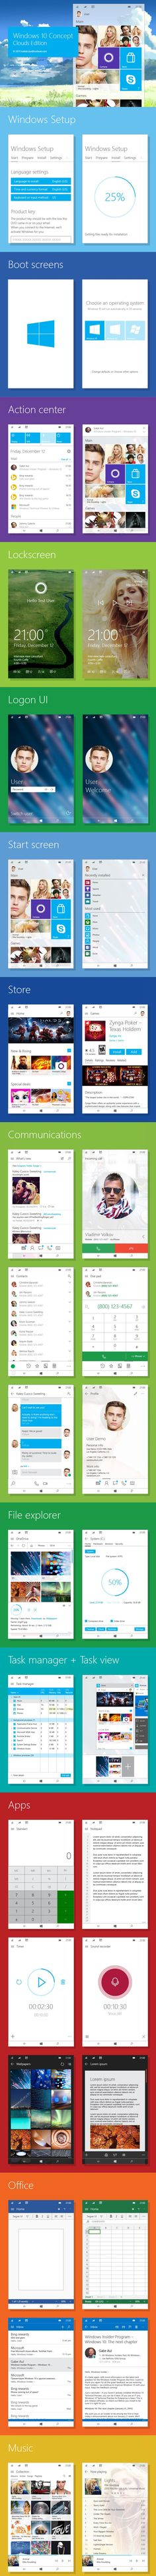 Citibank India Redesigned | Apps | Pinterest | Interface design ...